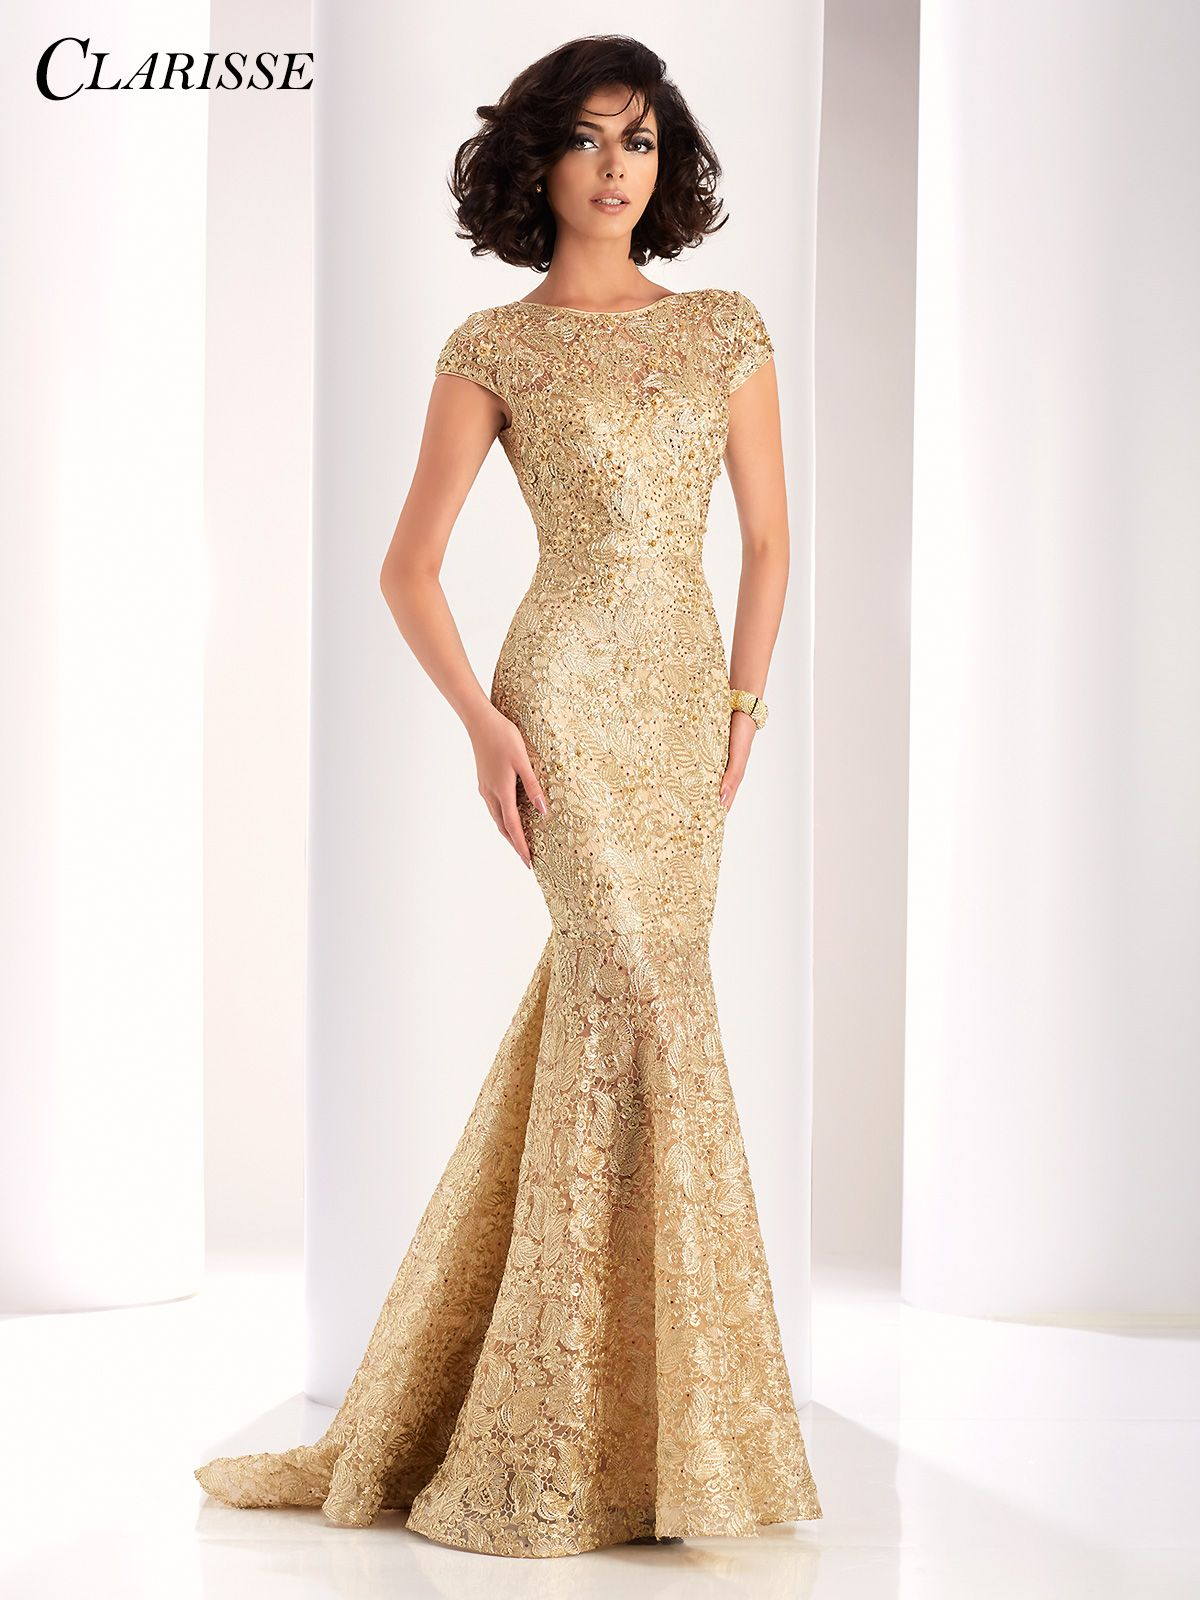 7839c7a25e Clarisse Gold Lace Mermaid Evening Gown 4852